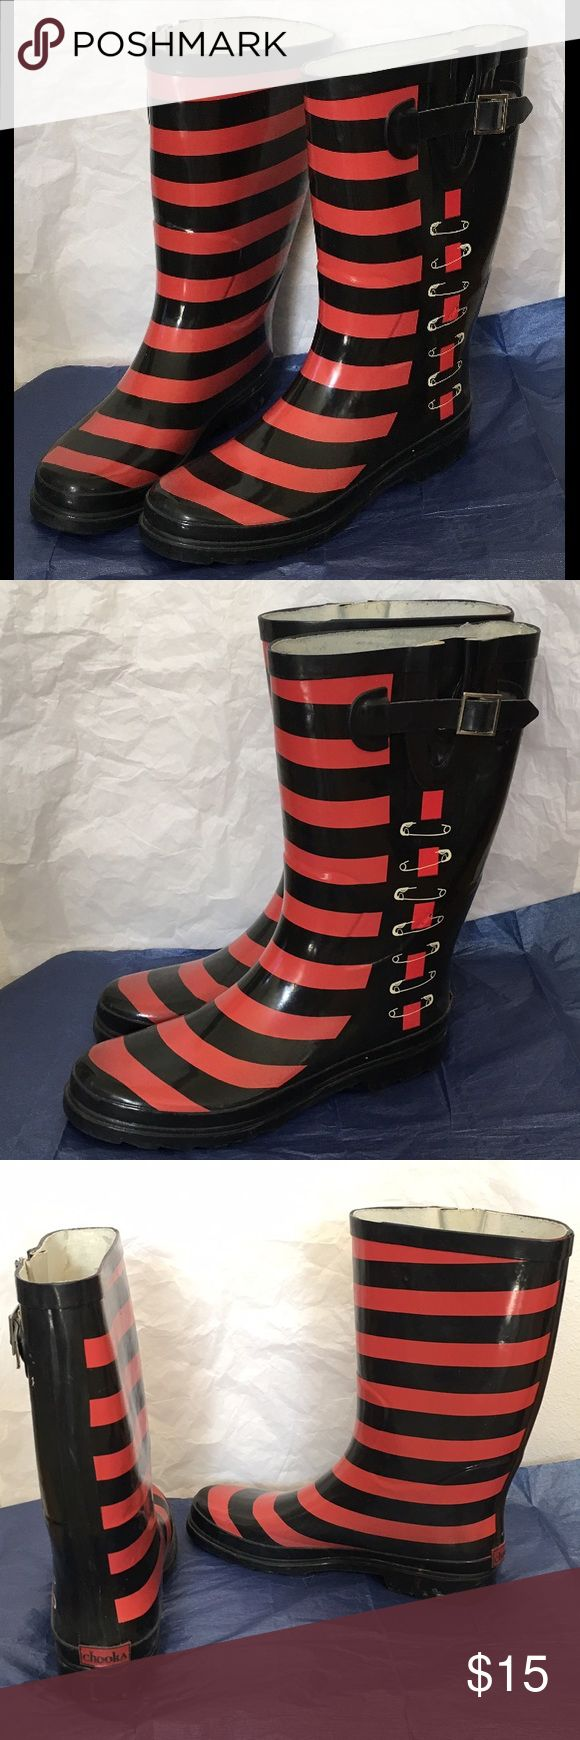 "Funky Safety Pin Striped Rain Boots Unique and well-worn pair of Chooka rain boots featuring a safety pin design on the outer calf and red on black stripes across the front and inner calf. Buckle closure with extension at the top to tuck in thicker pants. Without extension the top calf circumference is about 16"". Flaws include several small puncture marks near the safety pins, minor discoloration inside the boot, needs inserts, and there is some dirt on the soles. Chooka Shoes Winter & Rain…"